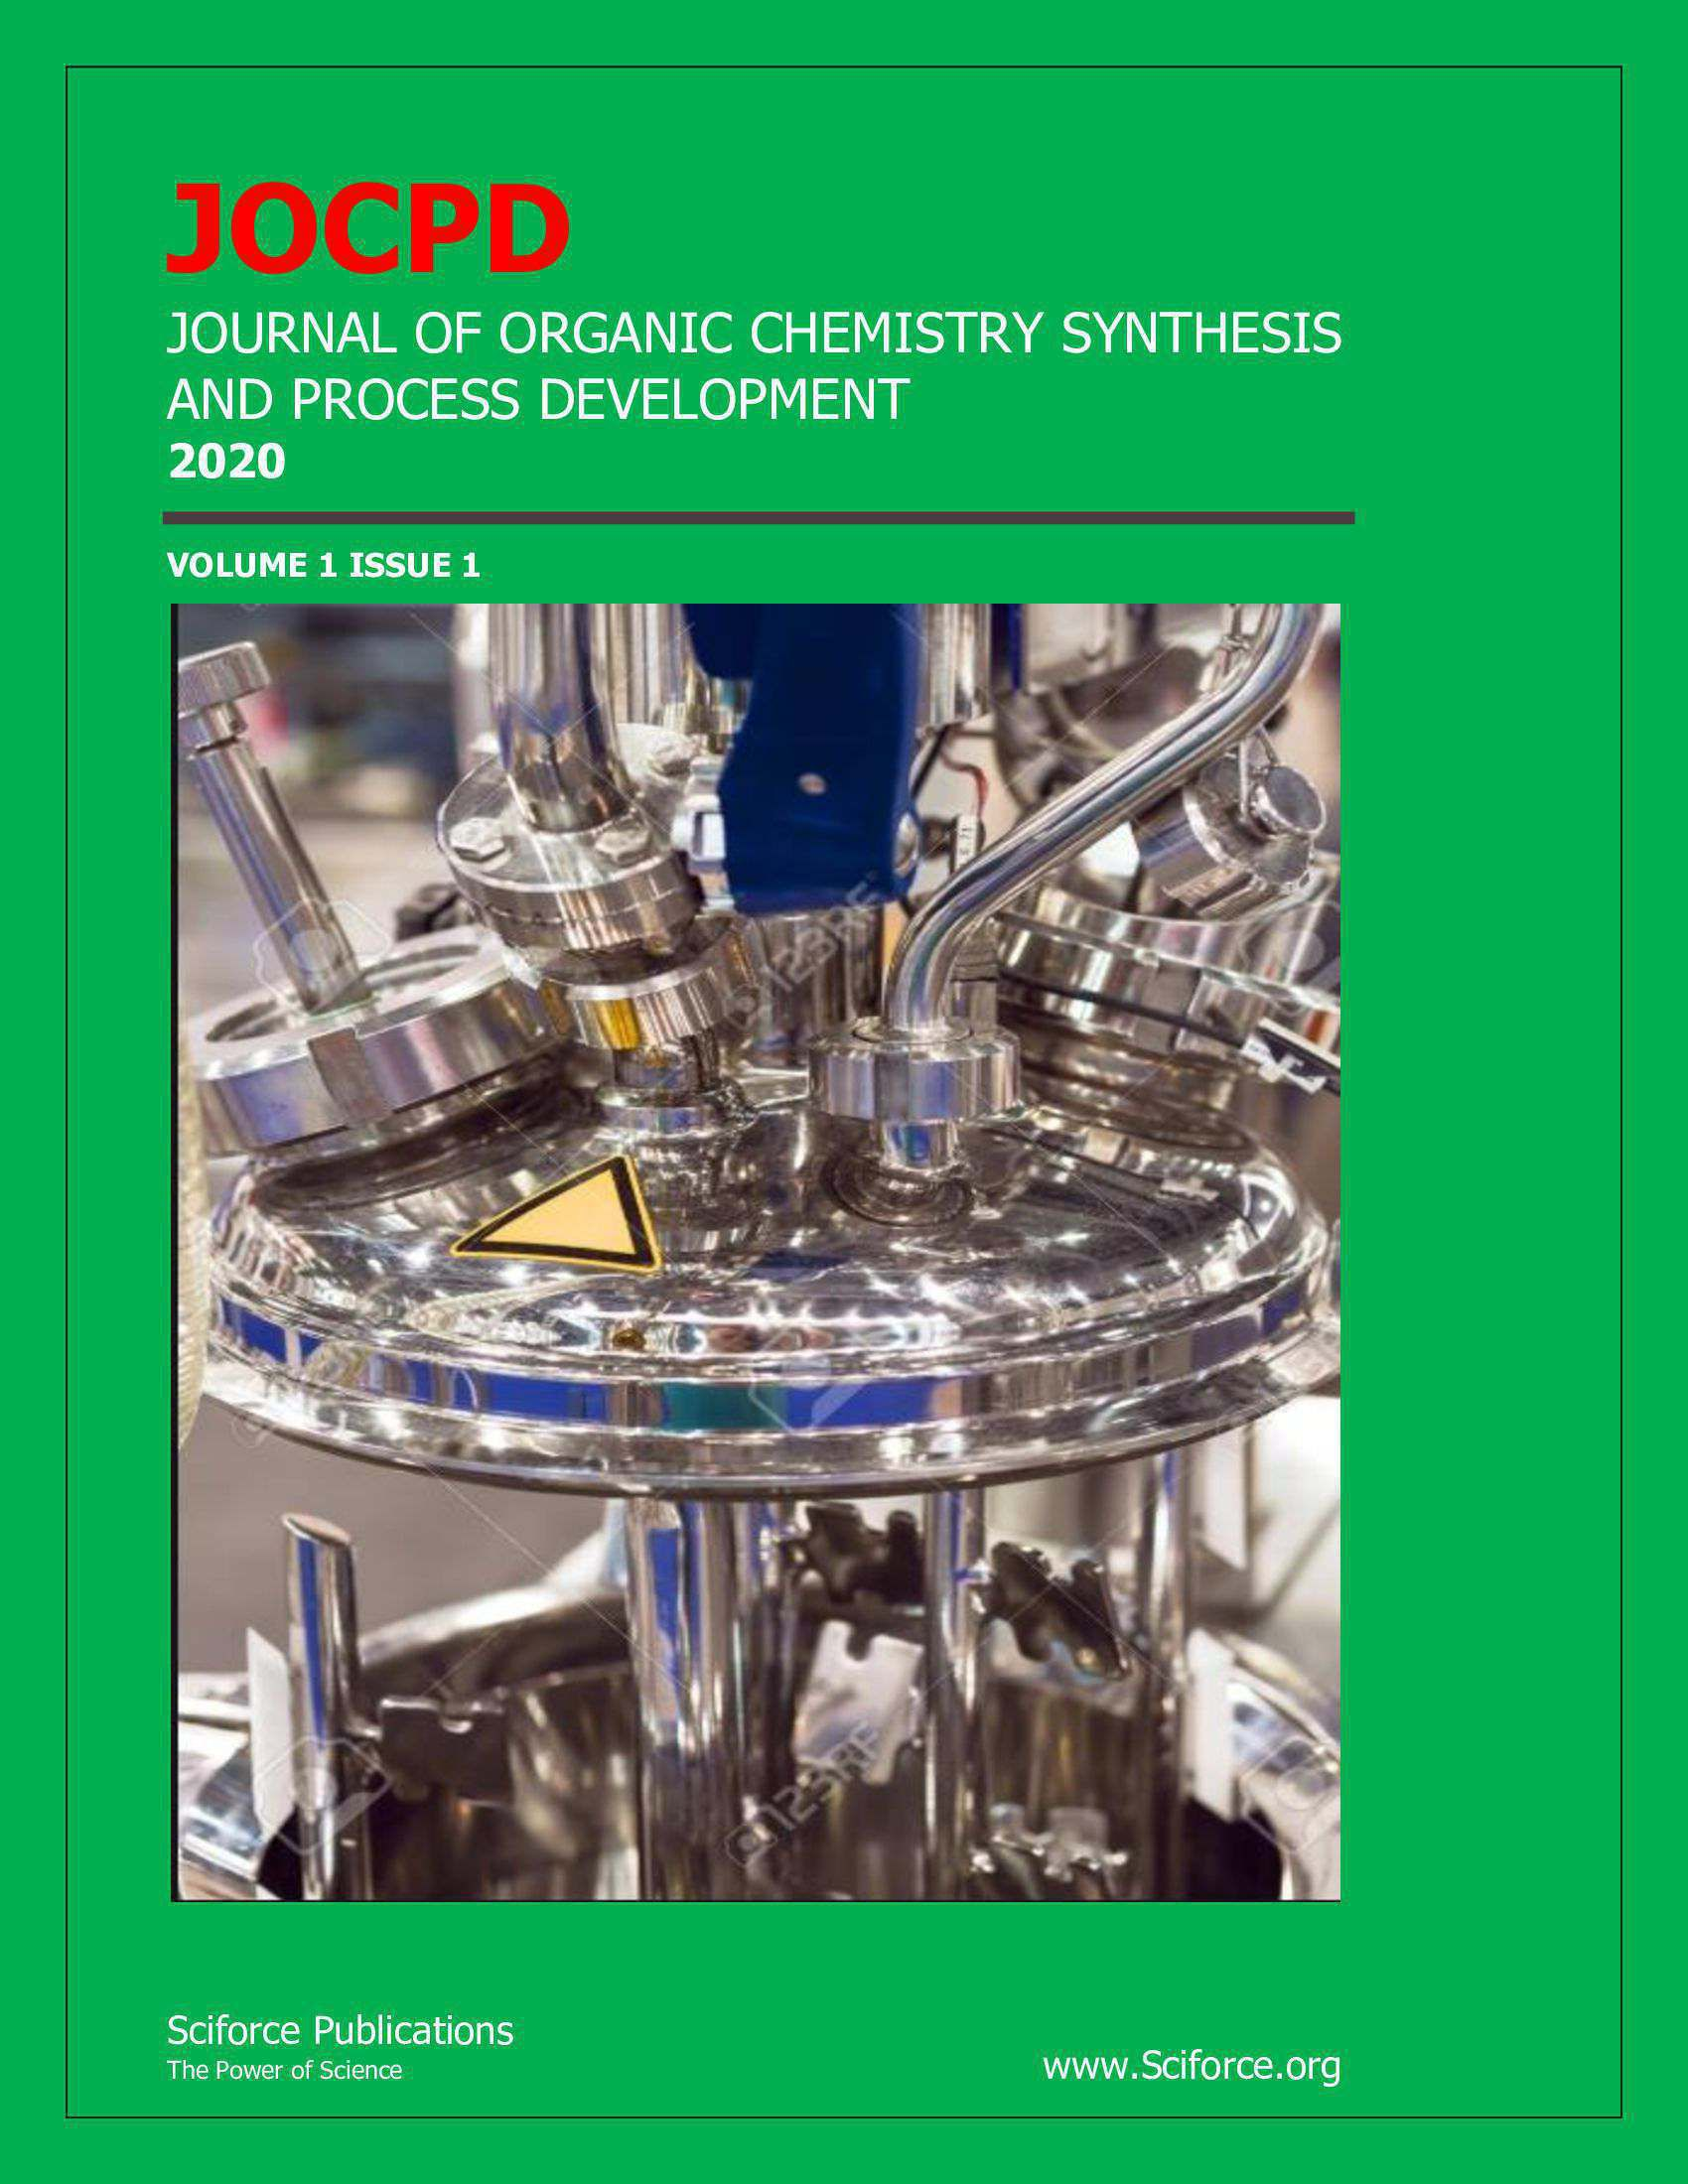 Journal of Organic Chemistry Synthesis and Process Development